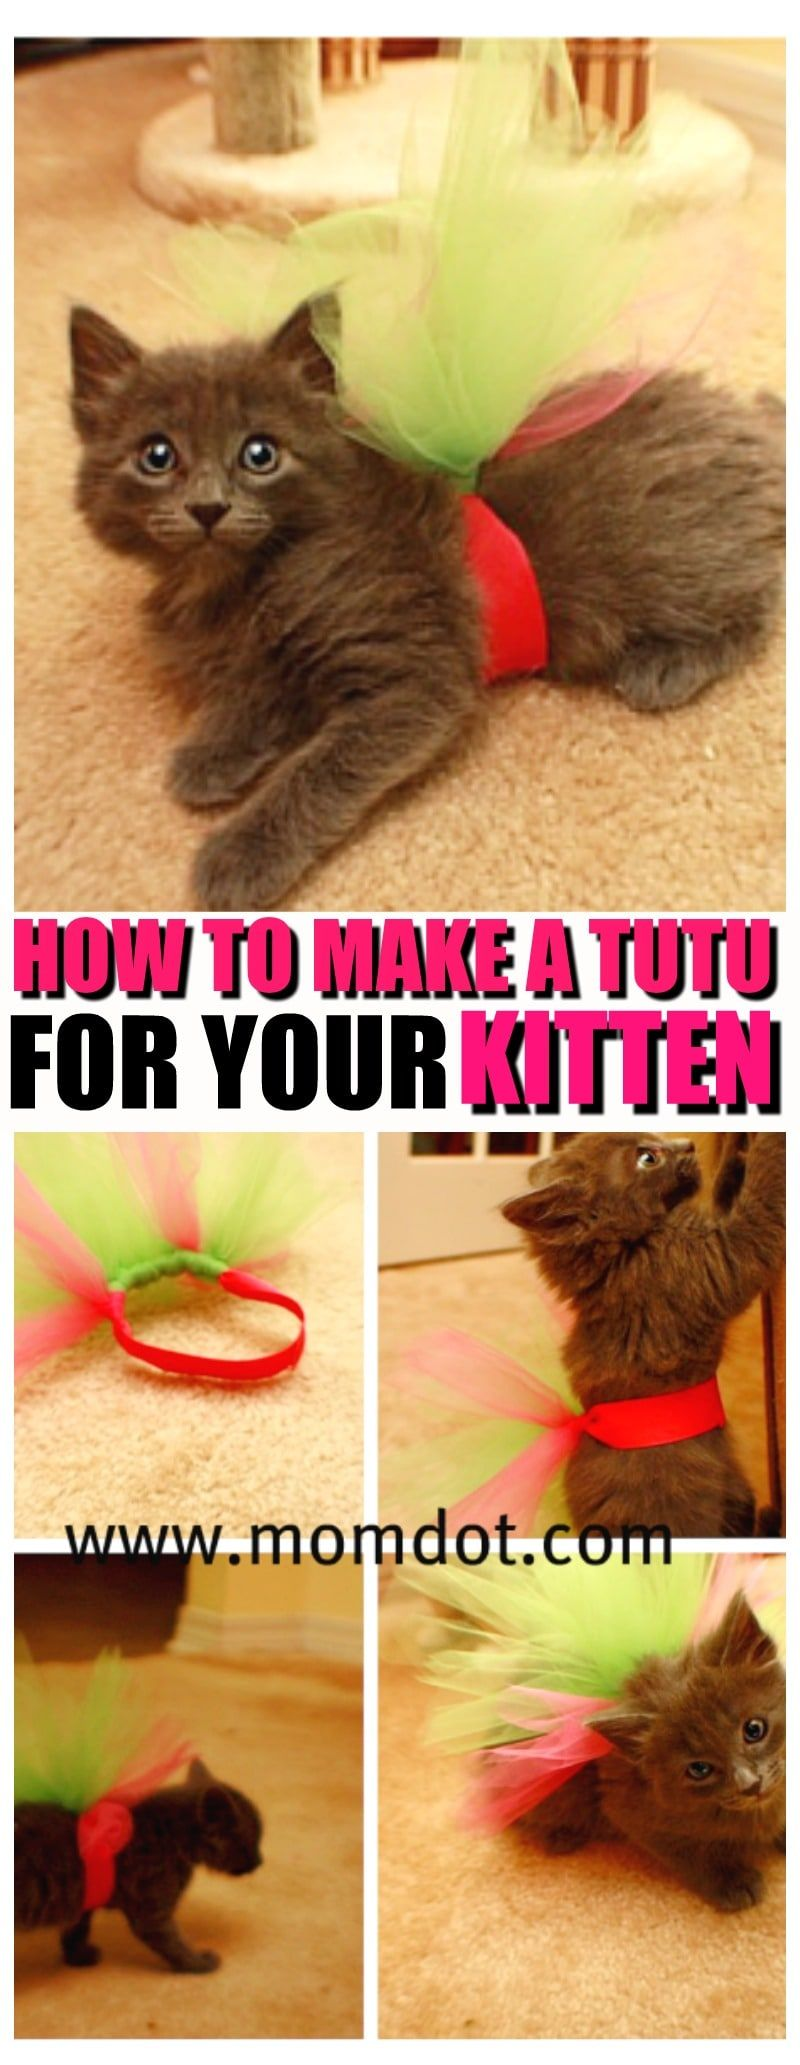 How To Make A Tutu For Your Kitten Dog Costumes For Kids Diy Dog Stuff Diy Kitten Clothes